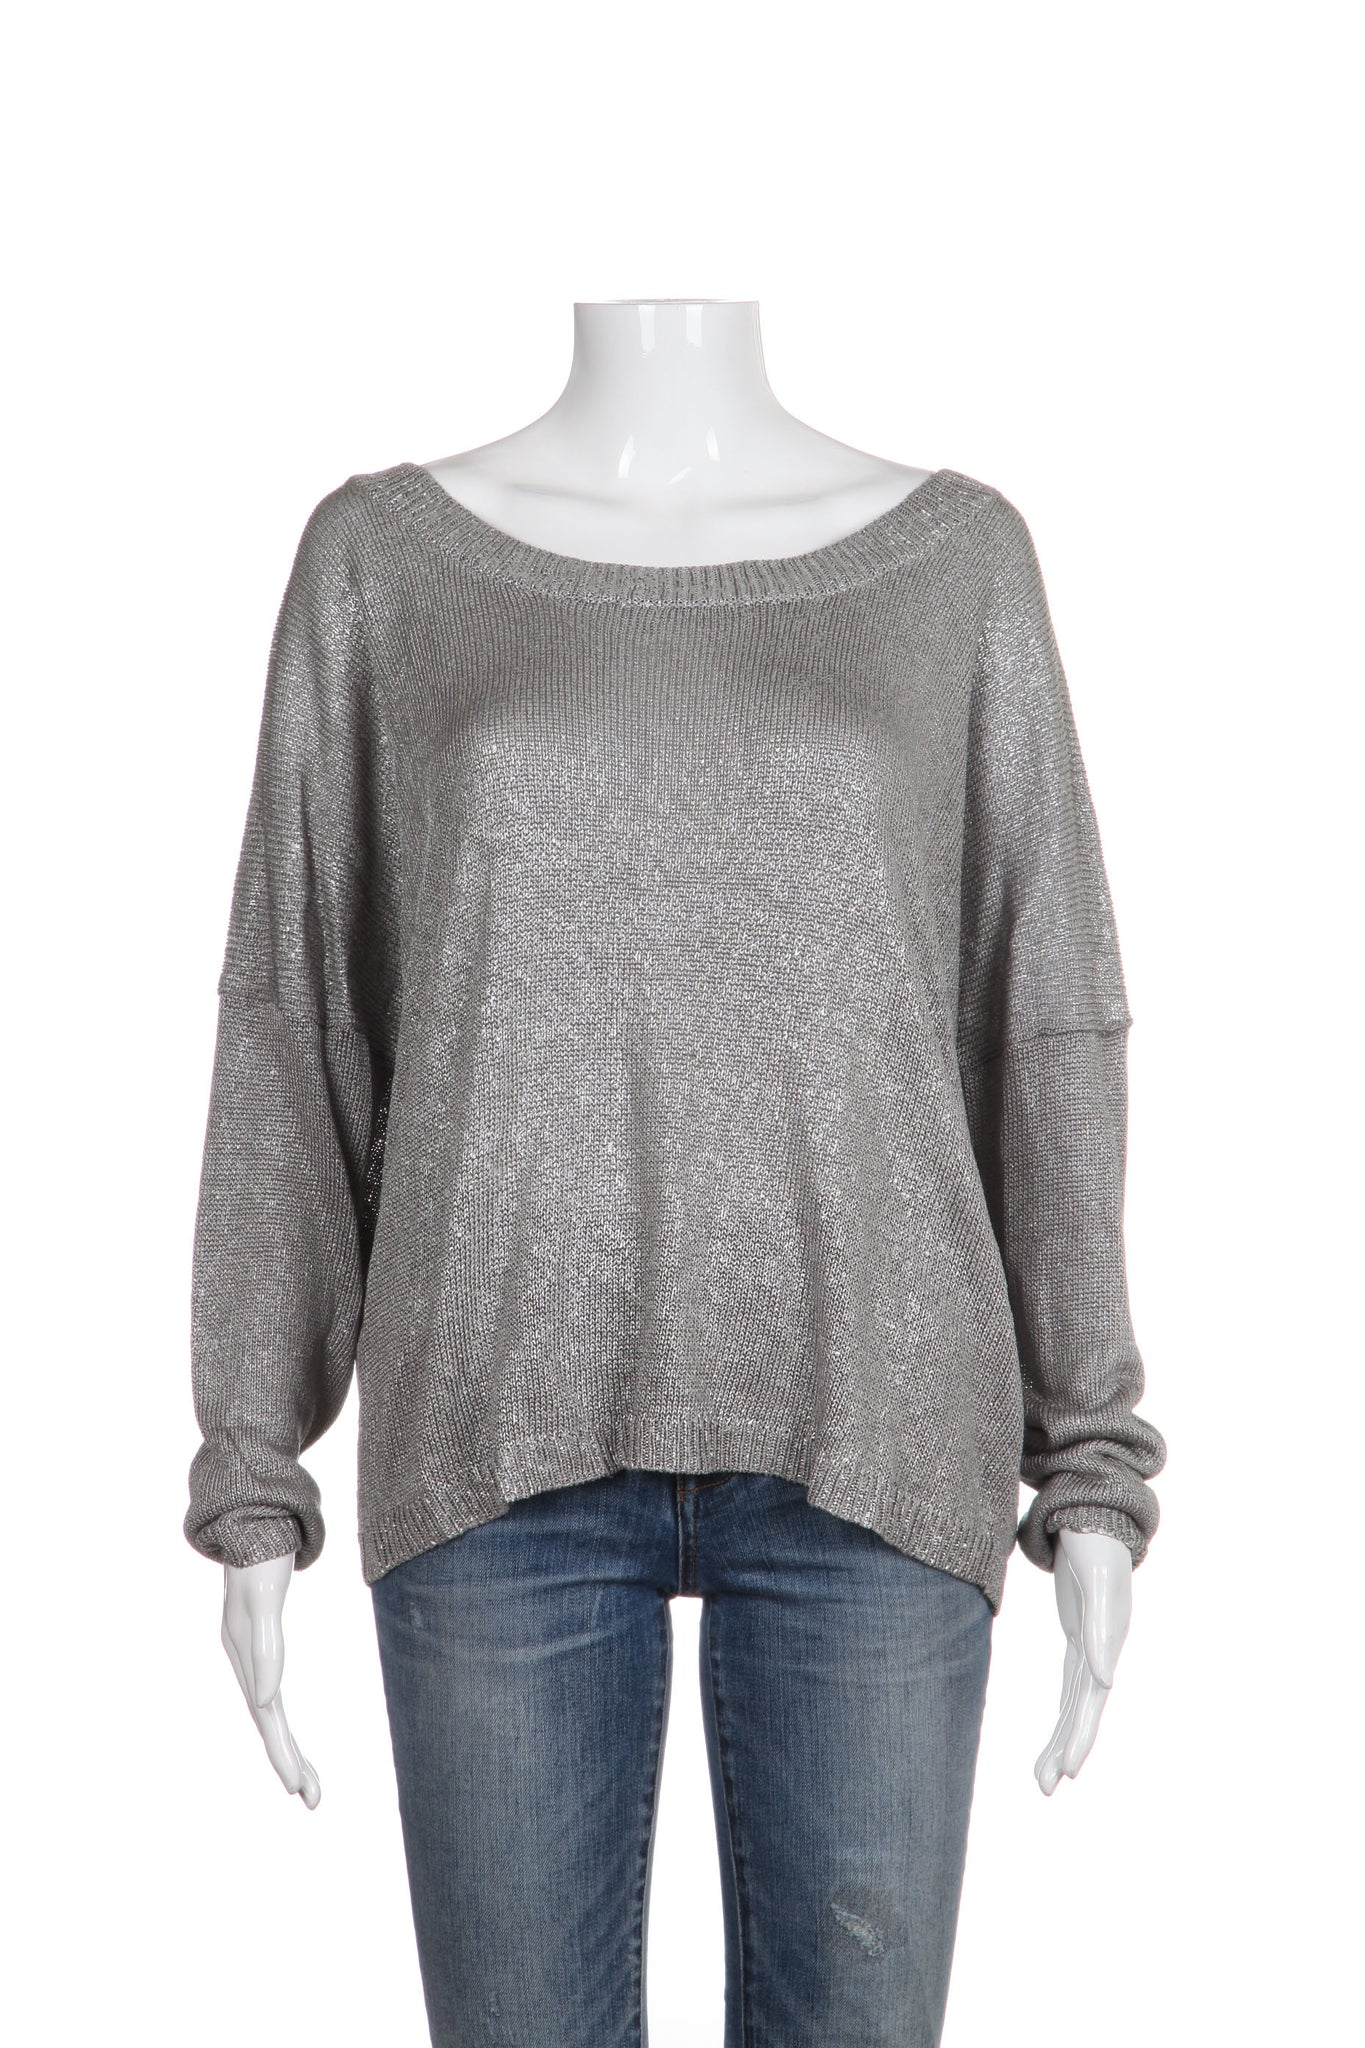 VINCE Sweater Medium Silver Knit Dressy Scoop Neck Long Sleeve Top